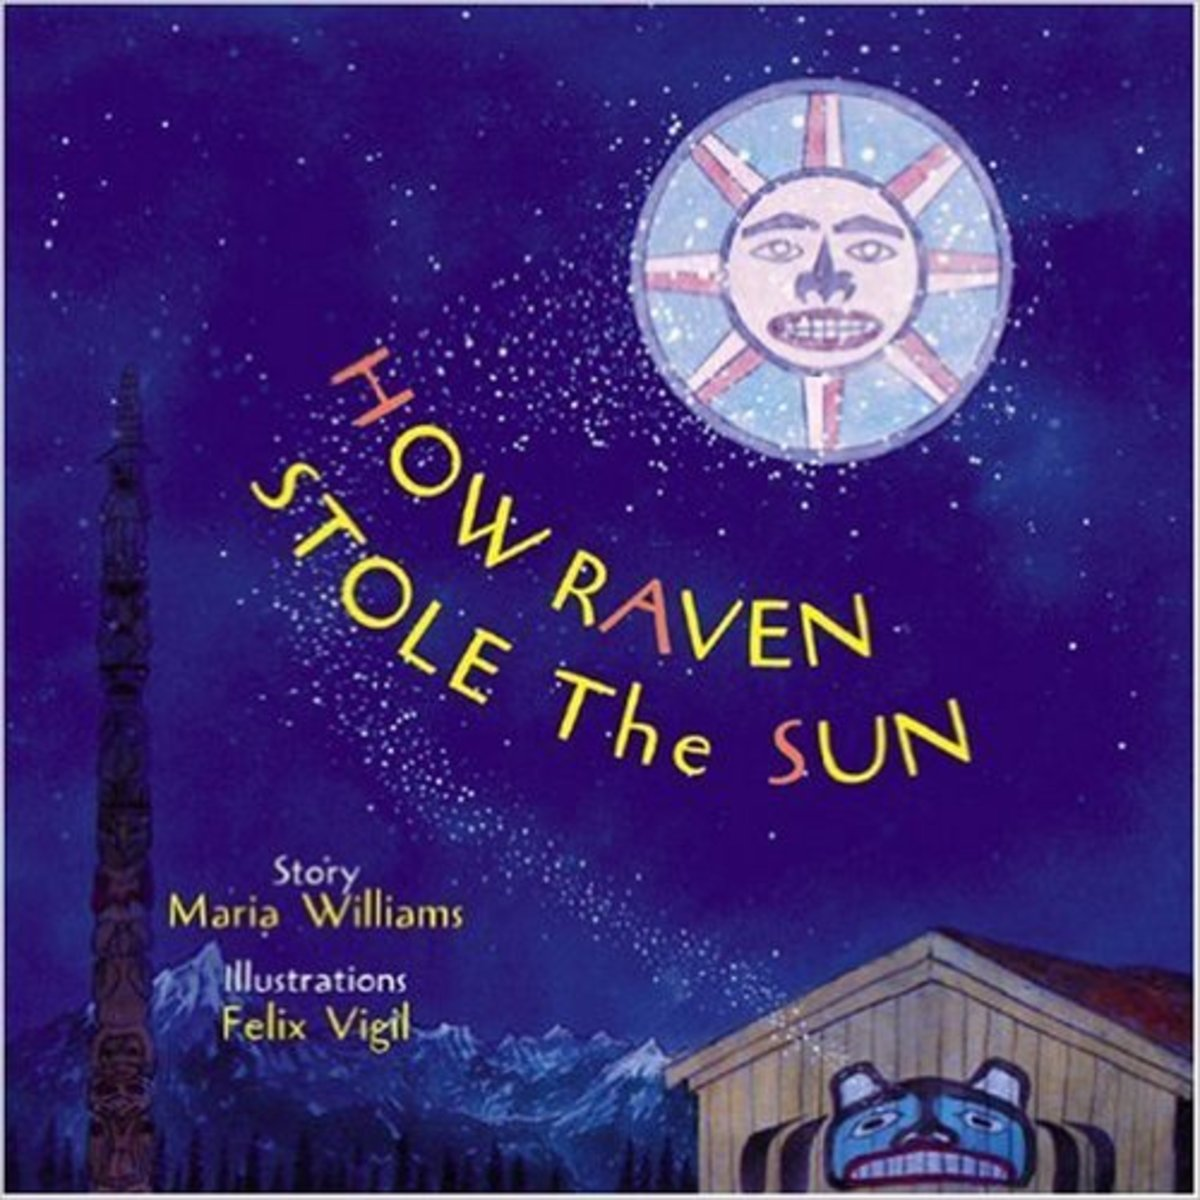 How Raven Stole the Sun (Tales of the People) by Maria Williams